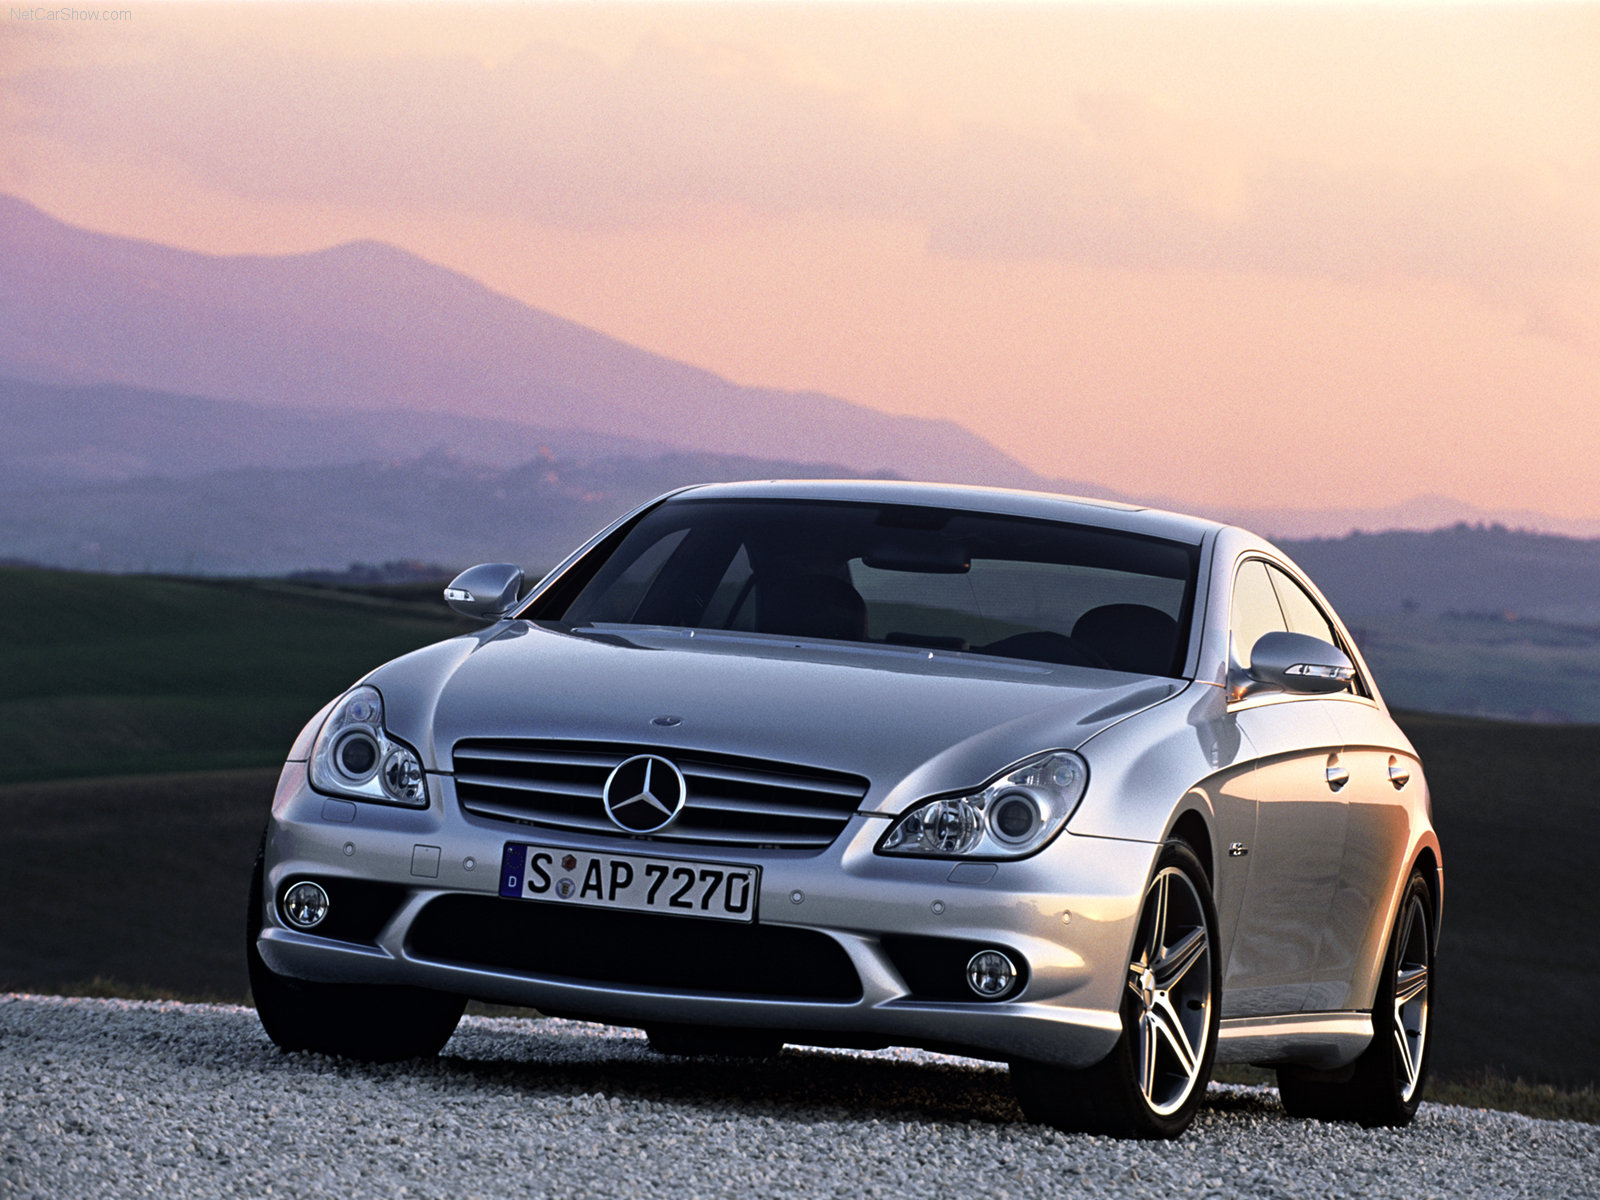 Mercedes Benz Wallpapers Hd Nice Wallpapers